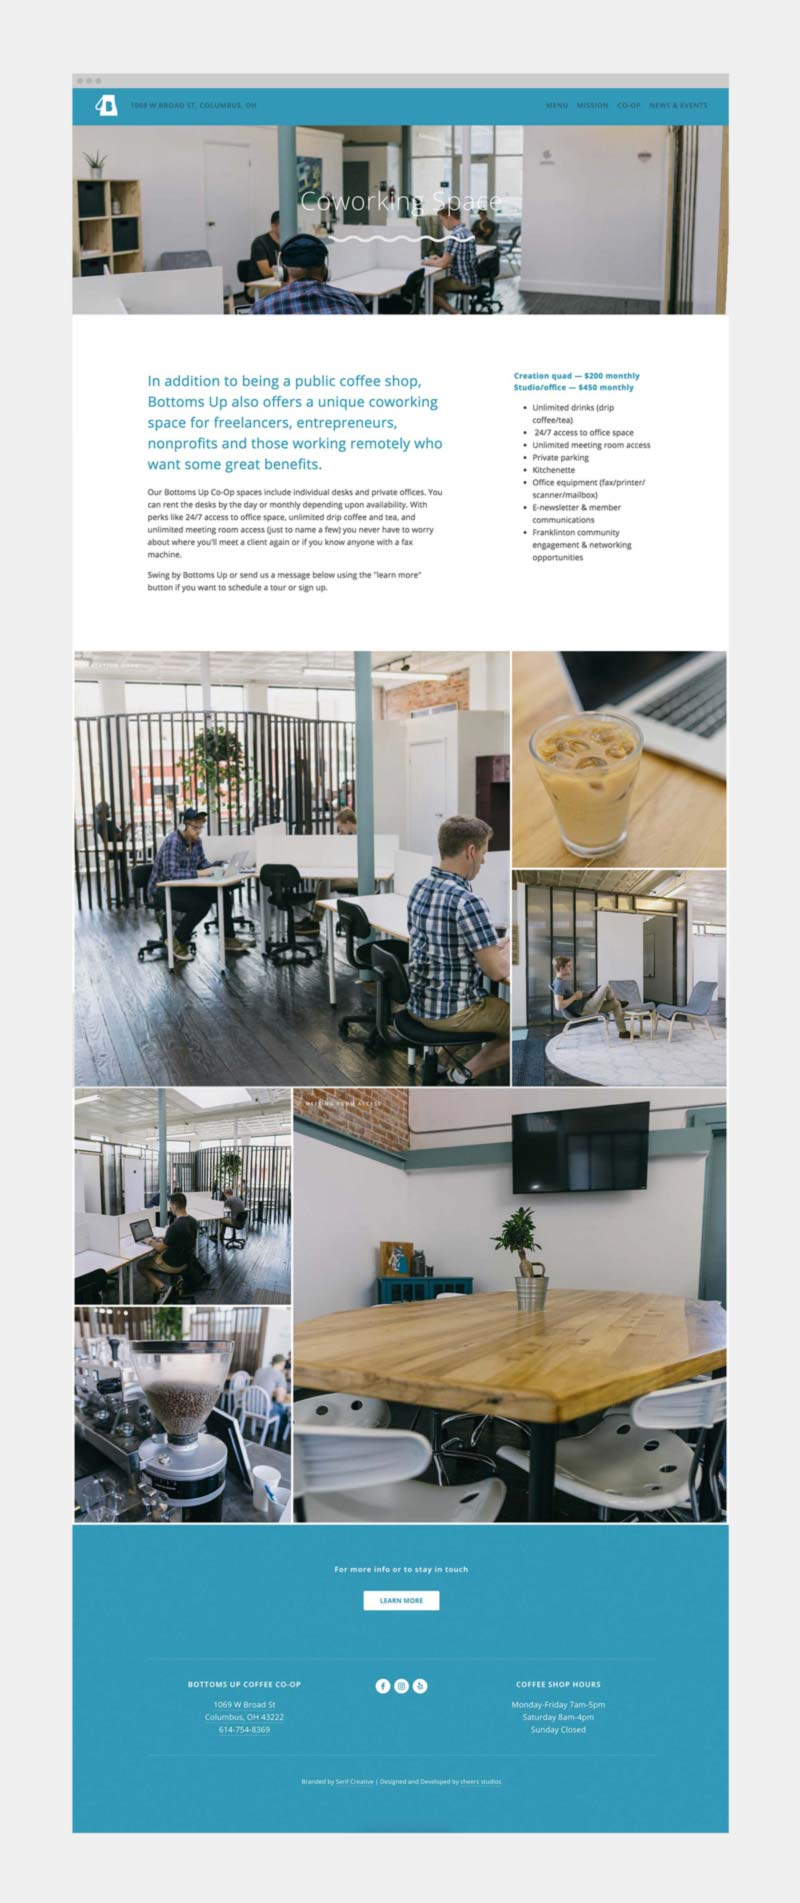 bottoms-up-coffee-co-op-columbus-oh-cafe-coworking-website-design.jpg